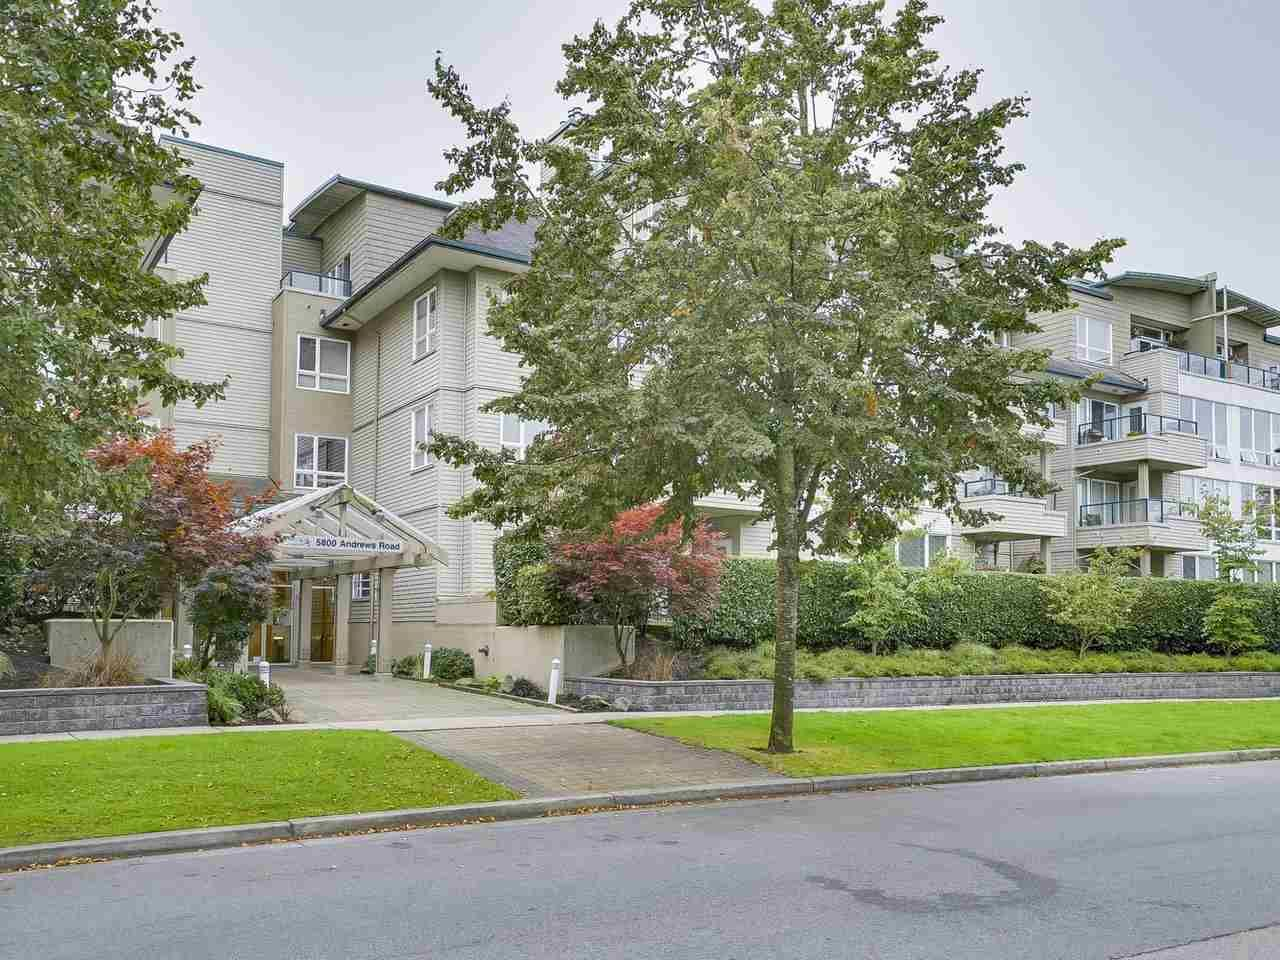 """Main Photo: 108 5800 ANDREWS Road in Richmond: Steveston South Condo for sale in """"VILLAS AT SOUTHCOVE"""" : MLS®# R2202832"""